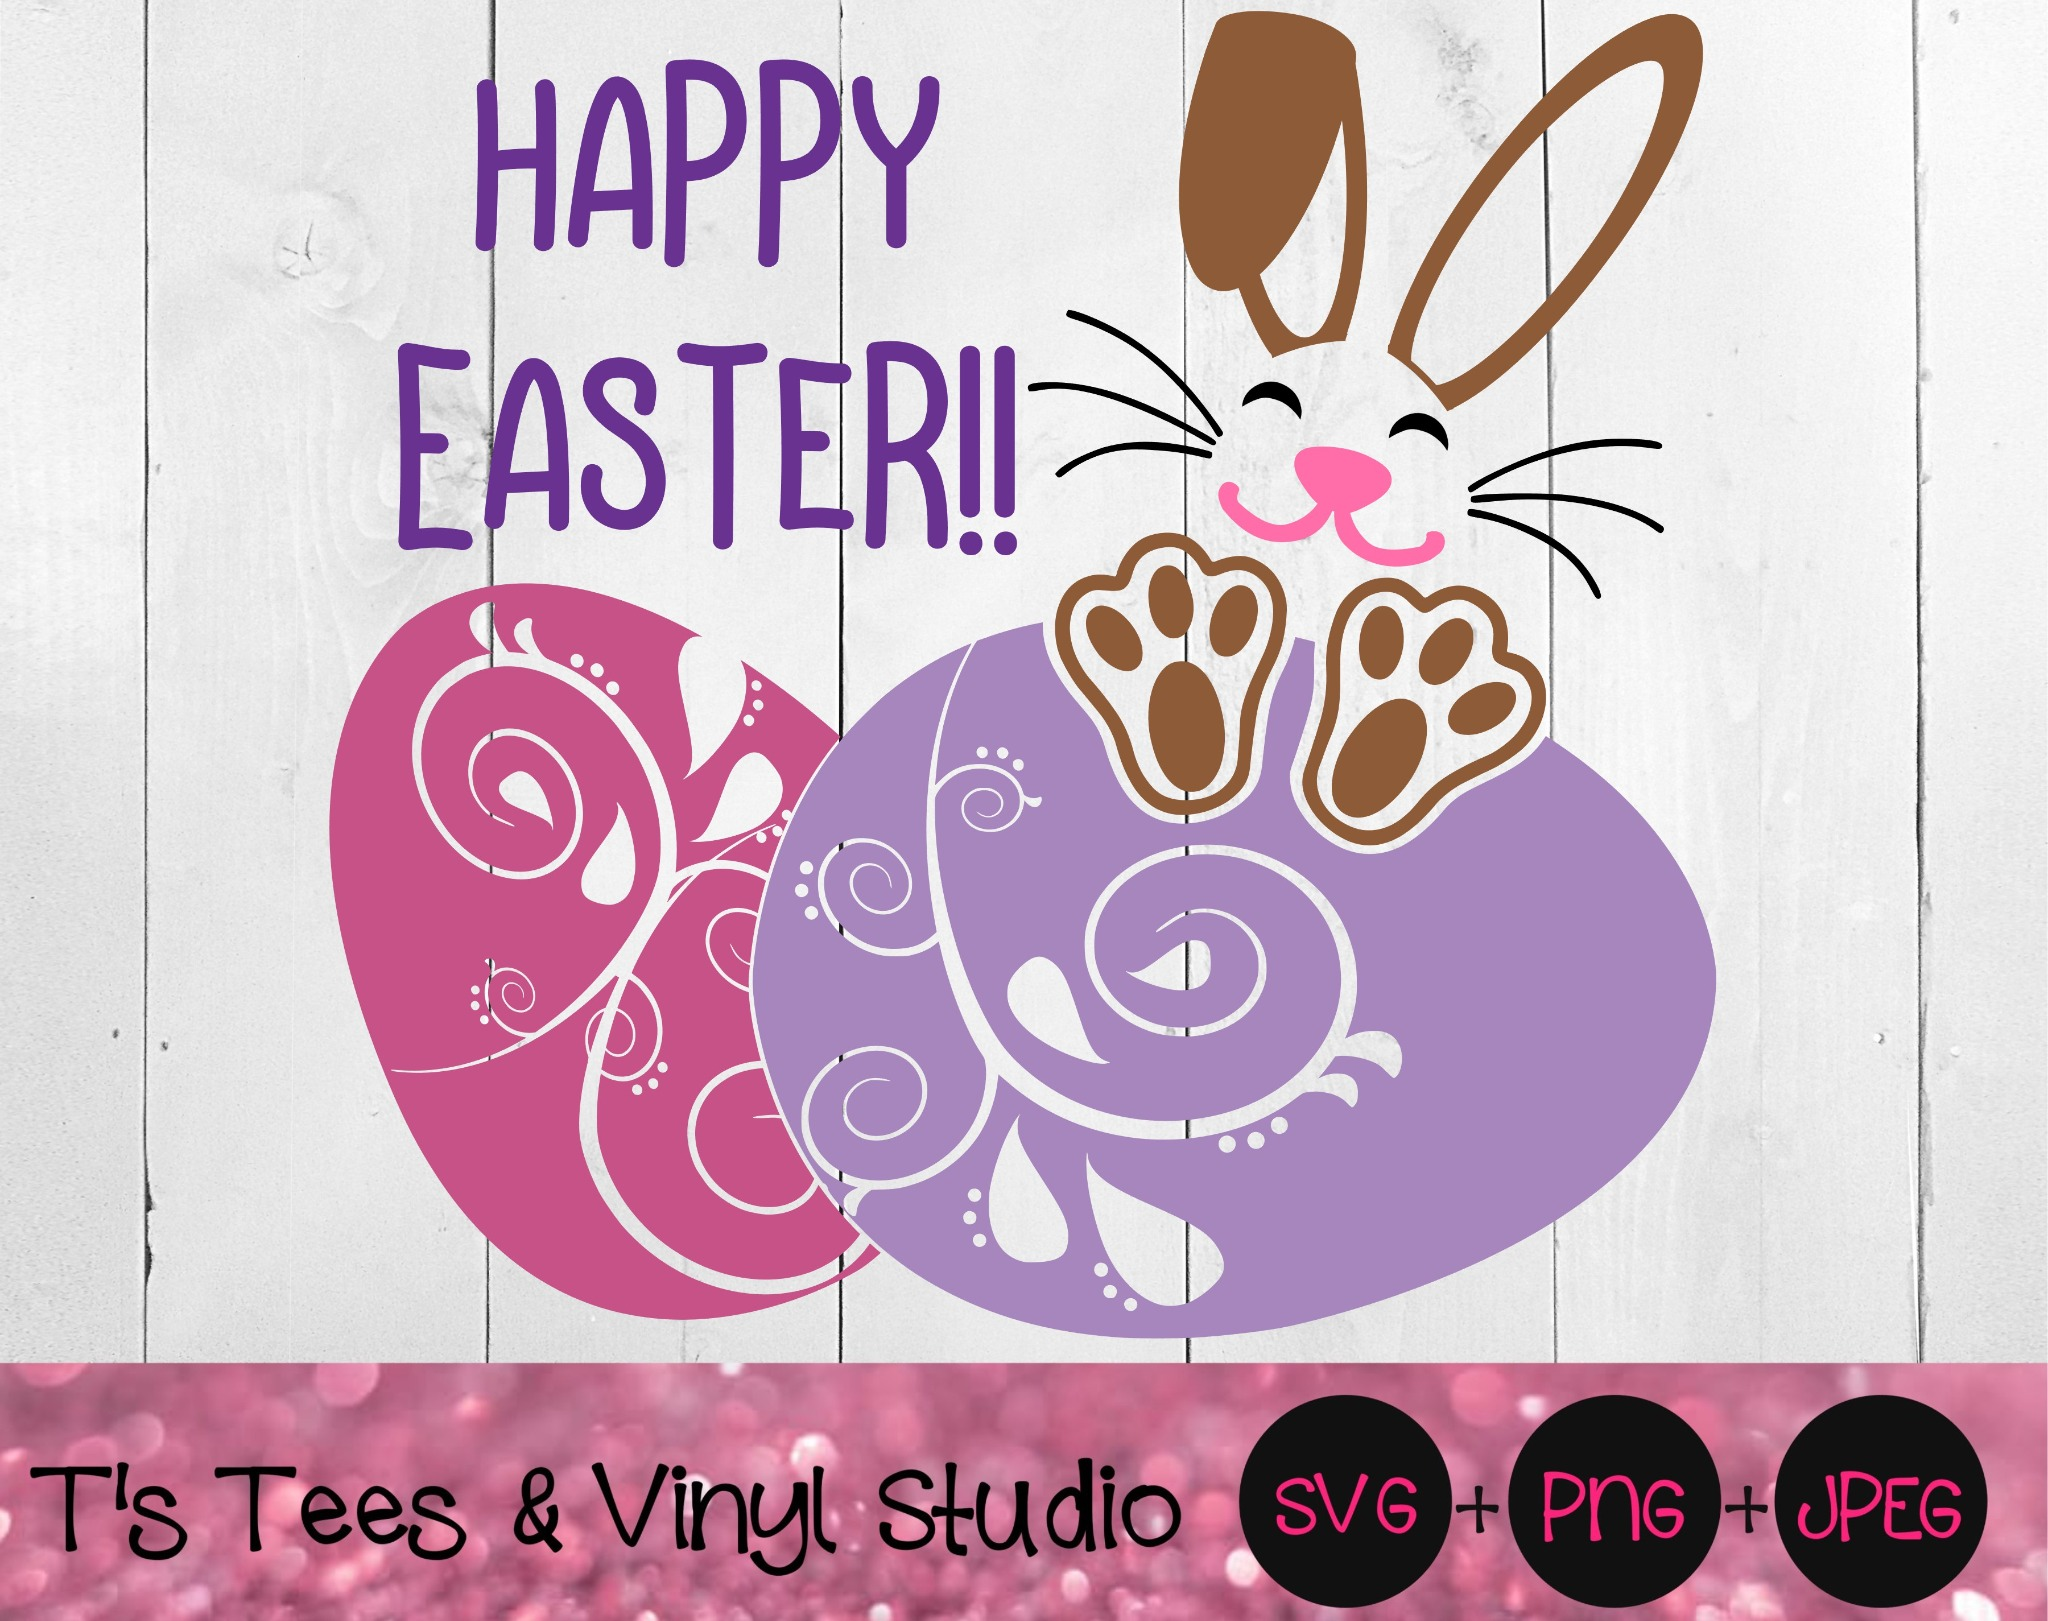 Happy Easter Svg, Easter Bunny, Easter Eggs, Floppy Ears, Bunny Rabbit, Decorated Eggs, He Is Risen,